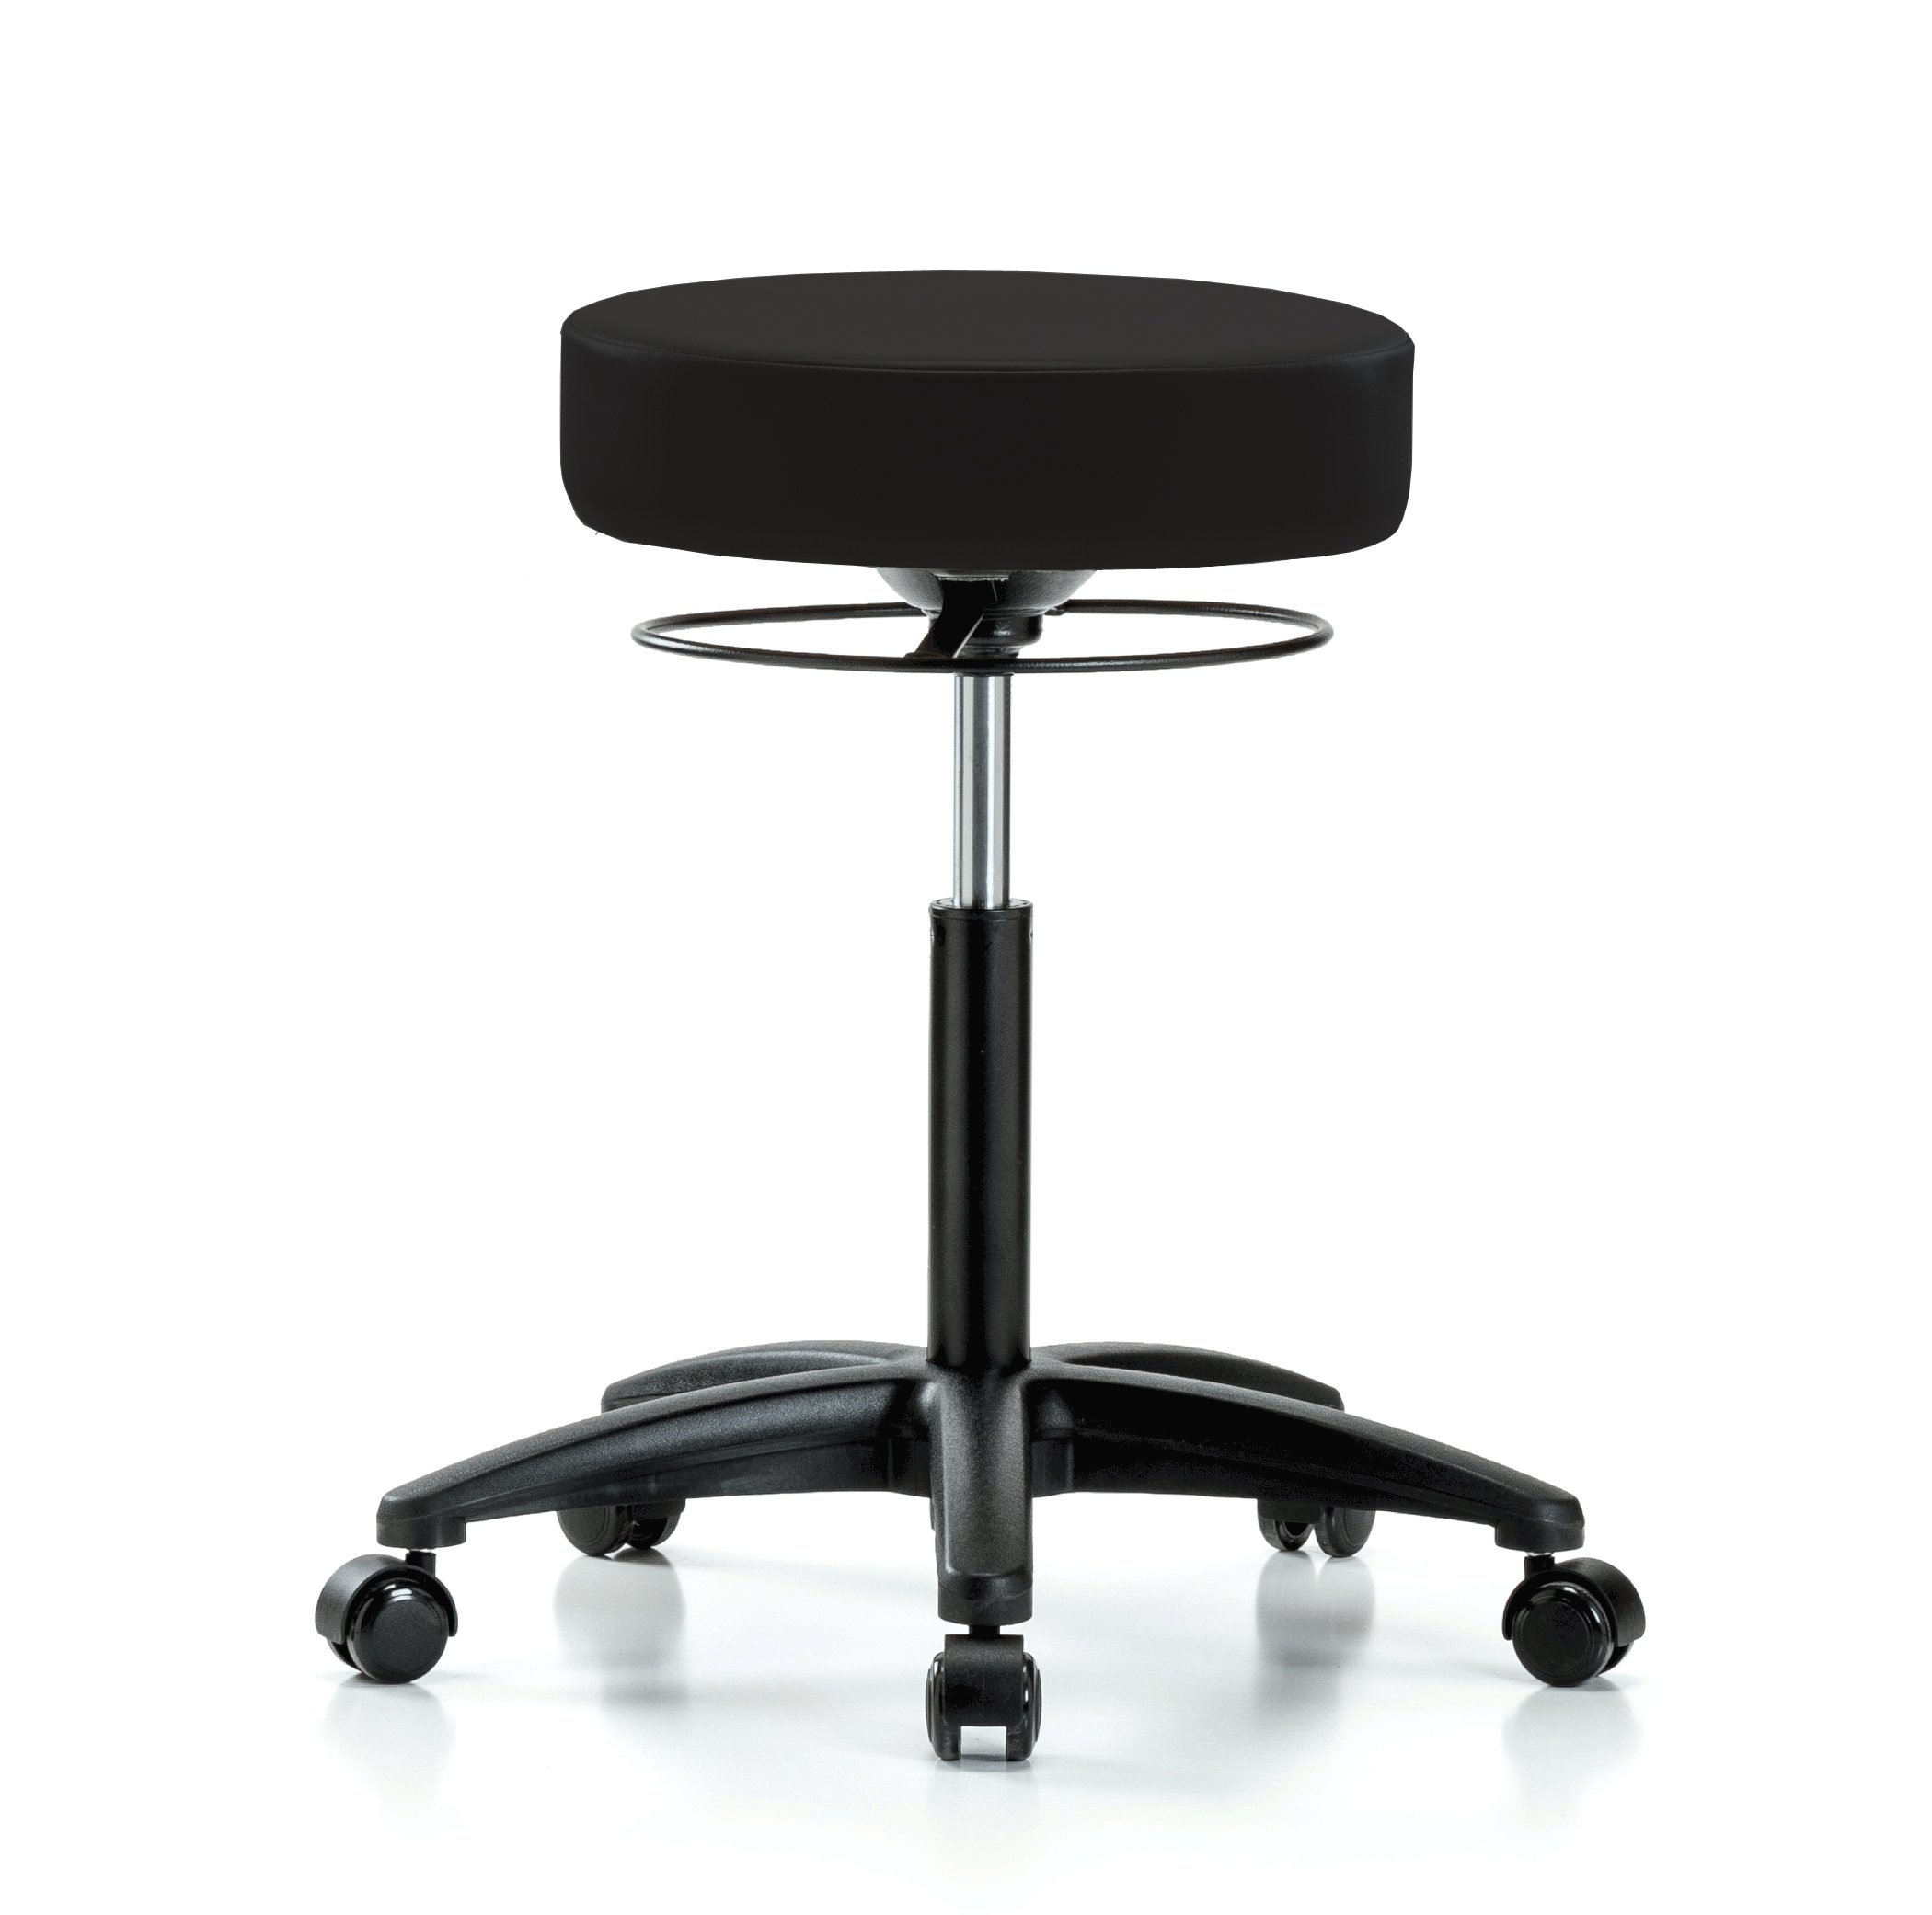 Perch Stella Rolling Adjustable Stool Medical Salon Spa Massage Tattoo Office 21'' - 28.5'' (Hard Floor Casters/Black Vinyl)